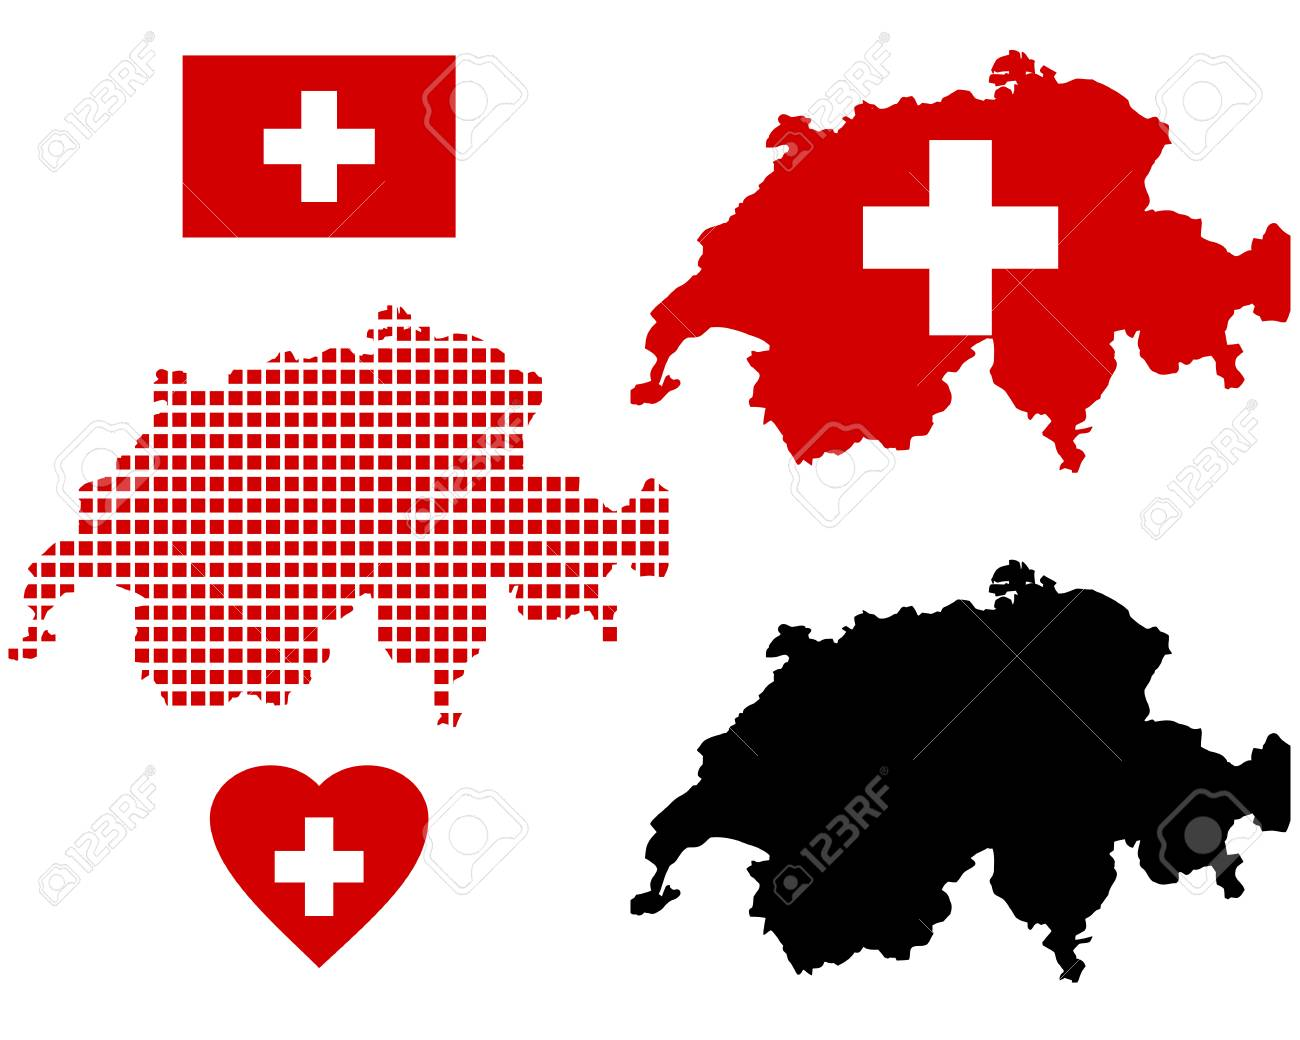 Map Of Switzerland In Different Colors And Symbols On A White